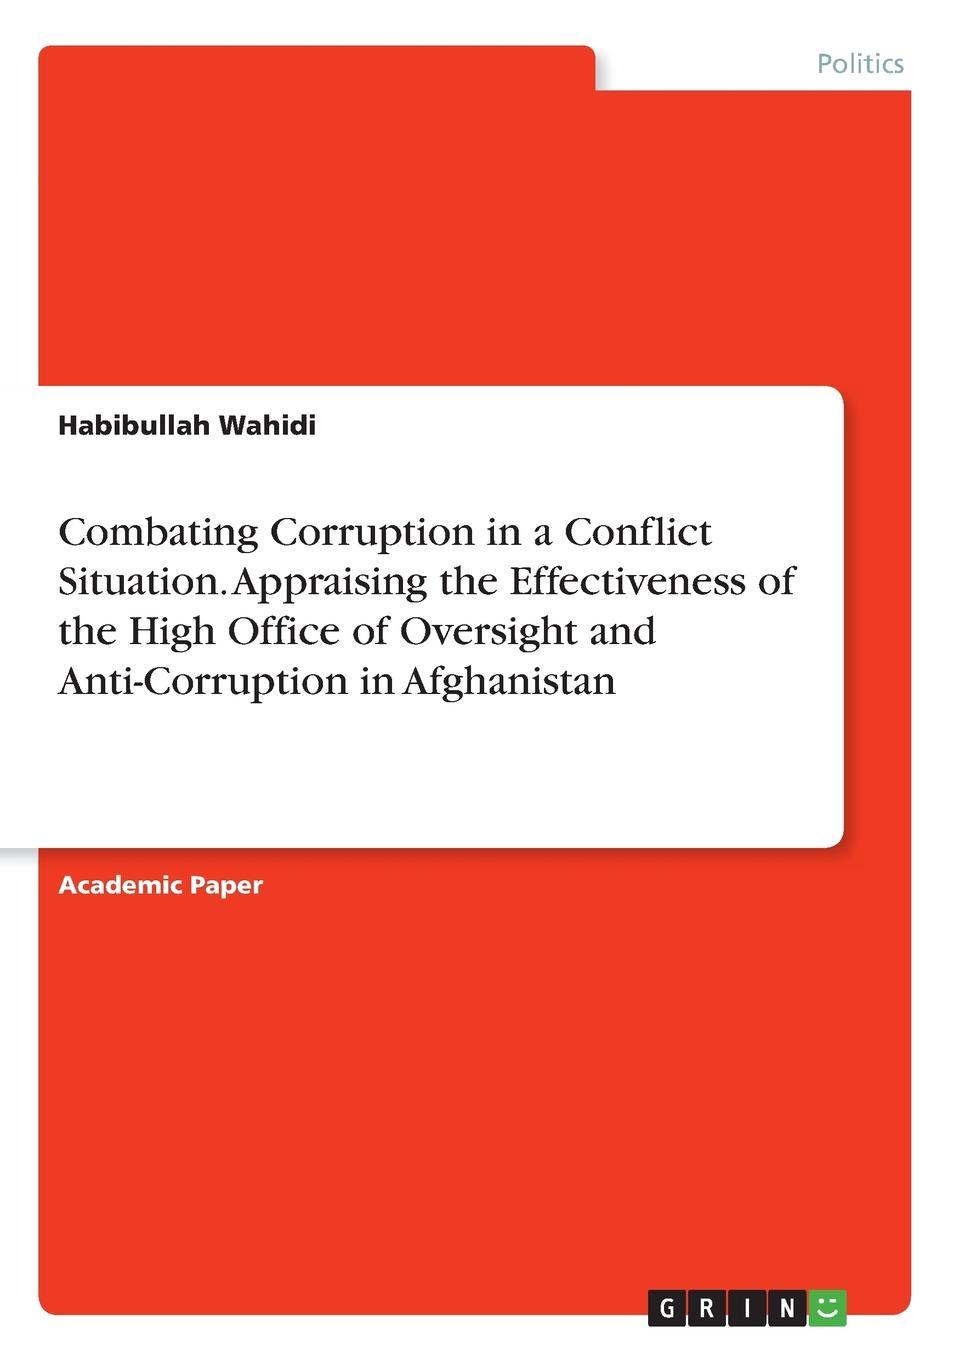 Habibullah Wahidi Combating Corruption in a Conflict Situation. Appraising the Effectiveness of the High Office of Oversight and Anti-Corruption in Afghanistan недорго, оригинальная цена